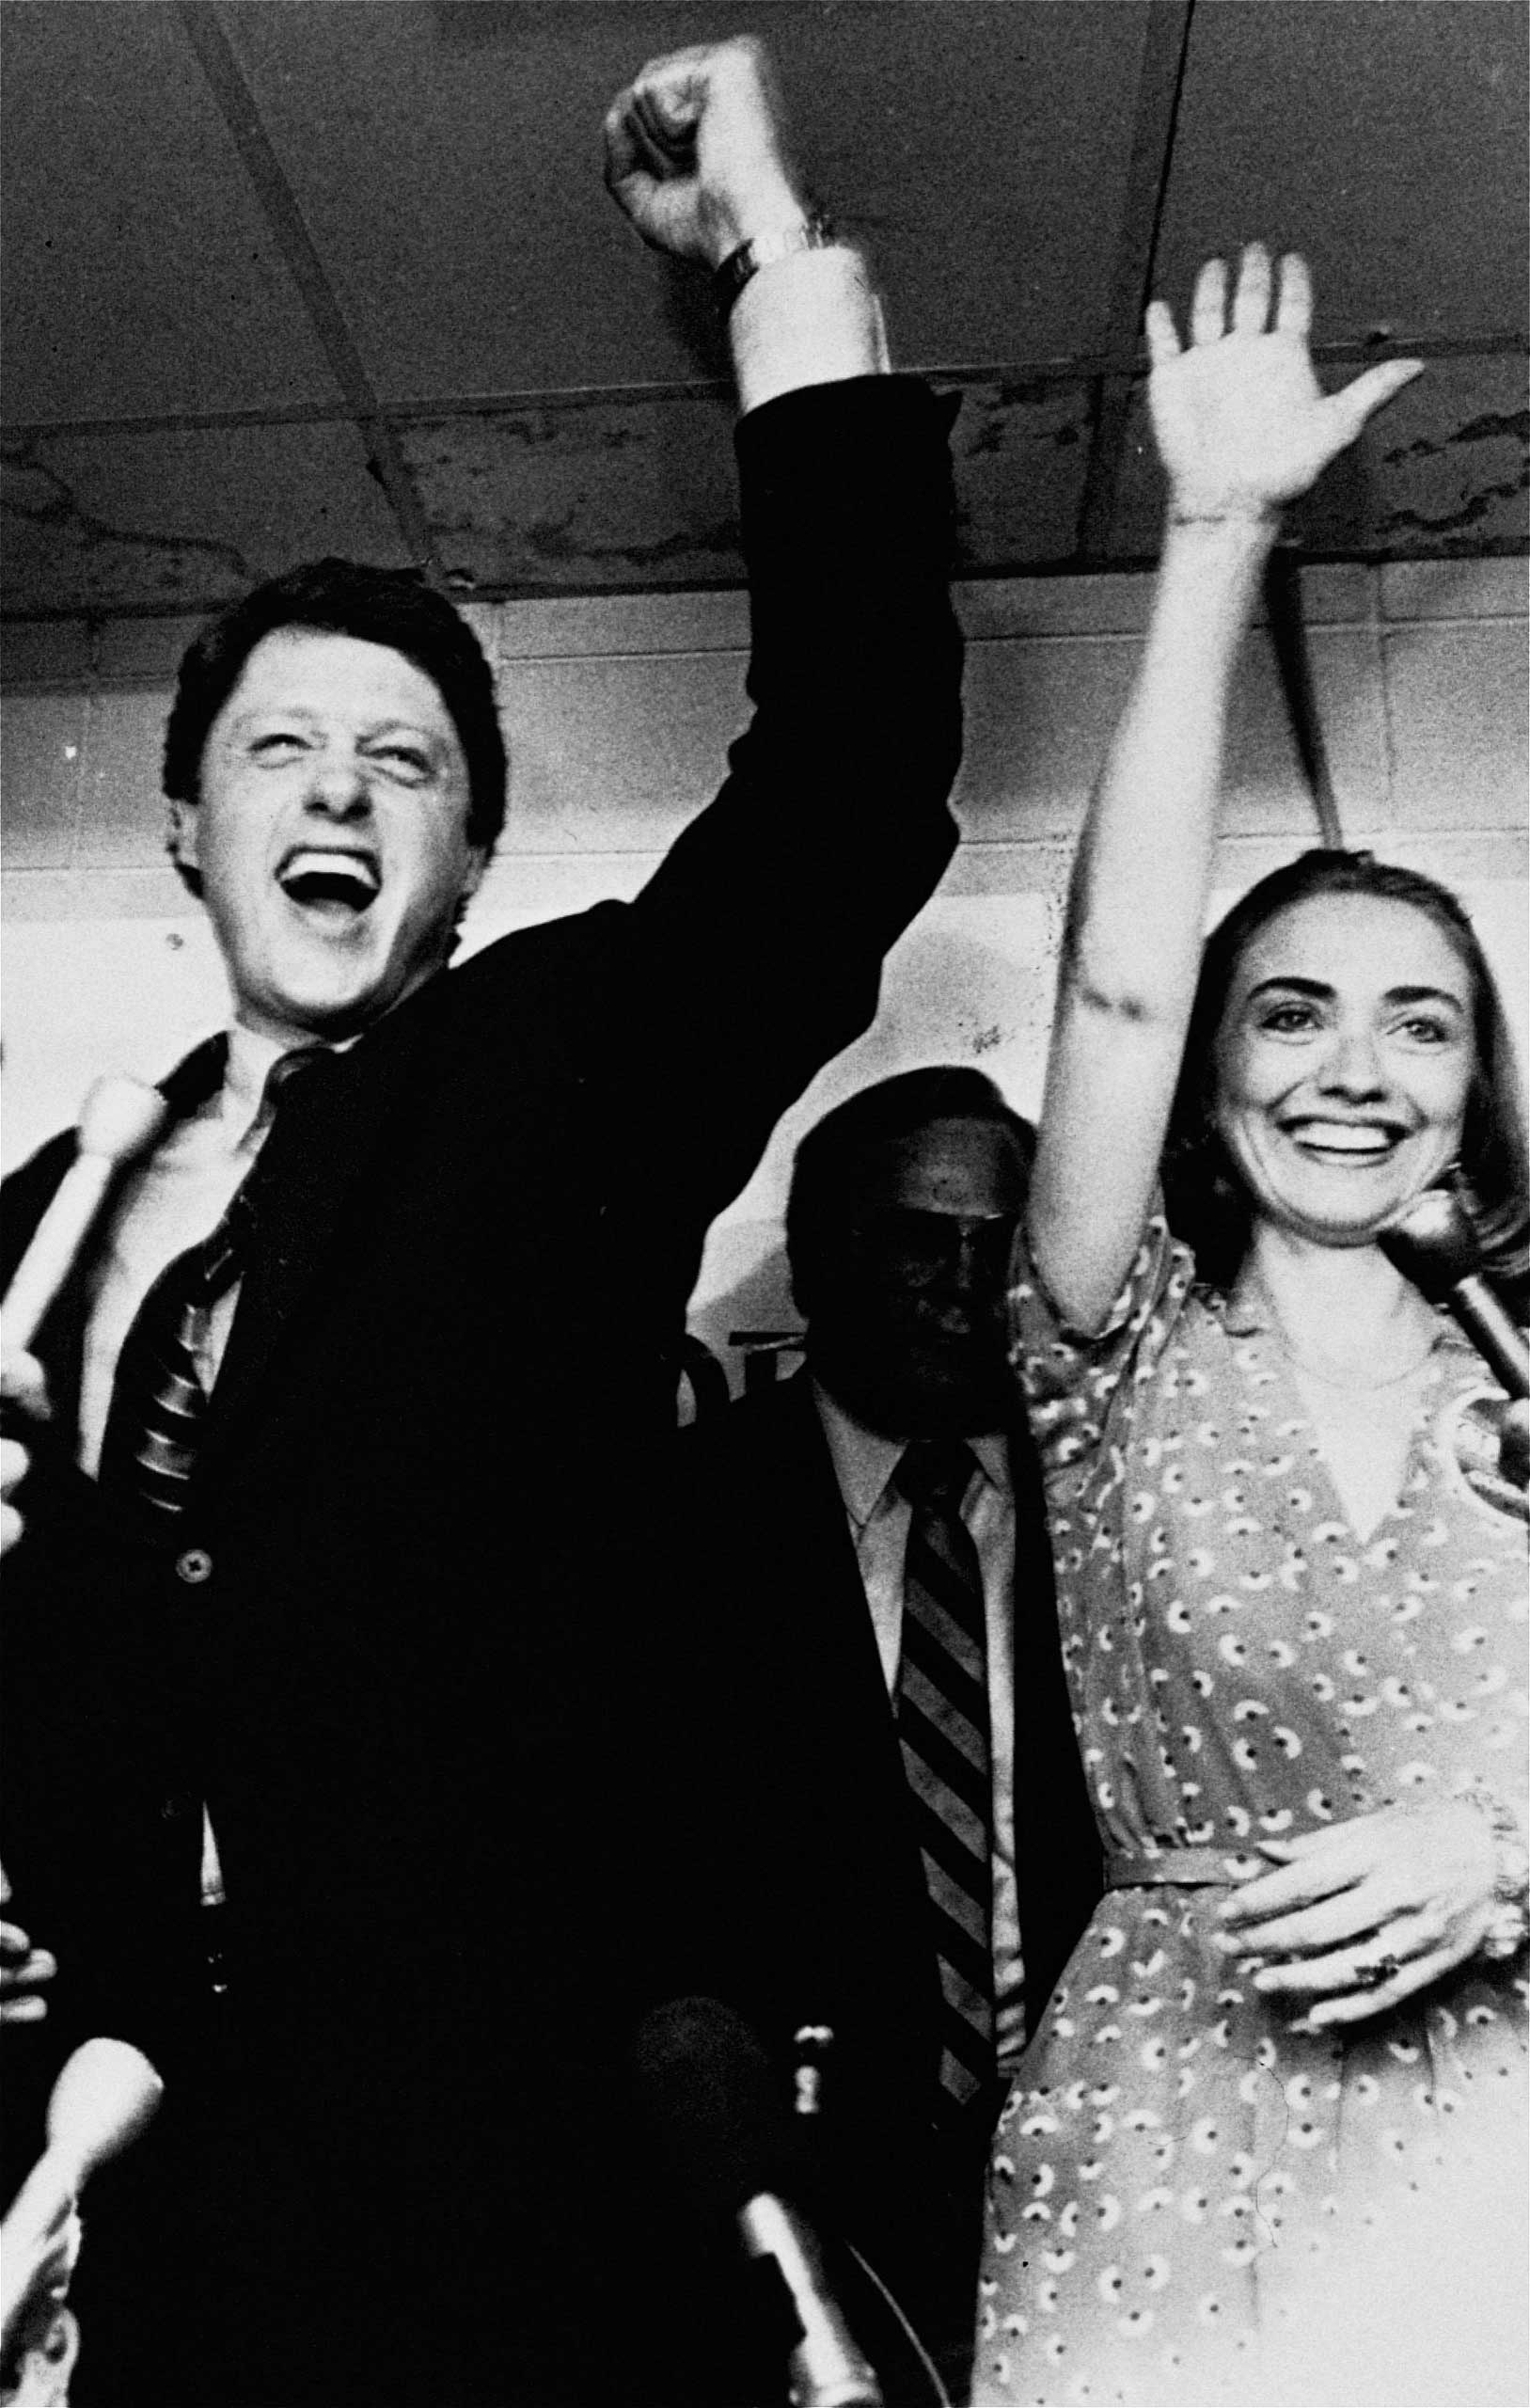 <b>Campaign Companion:</b> Clinton celebrates her husband's victory in a Democratic runoff in Little Rock, Ark. on June 8, 1982.